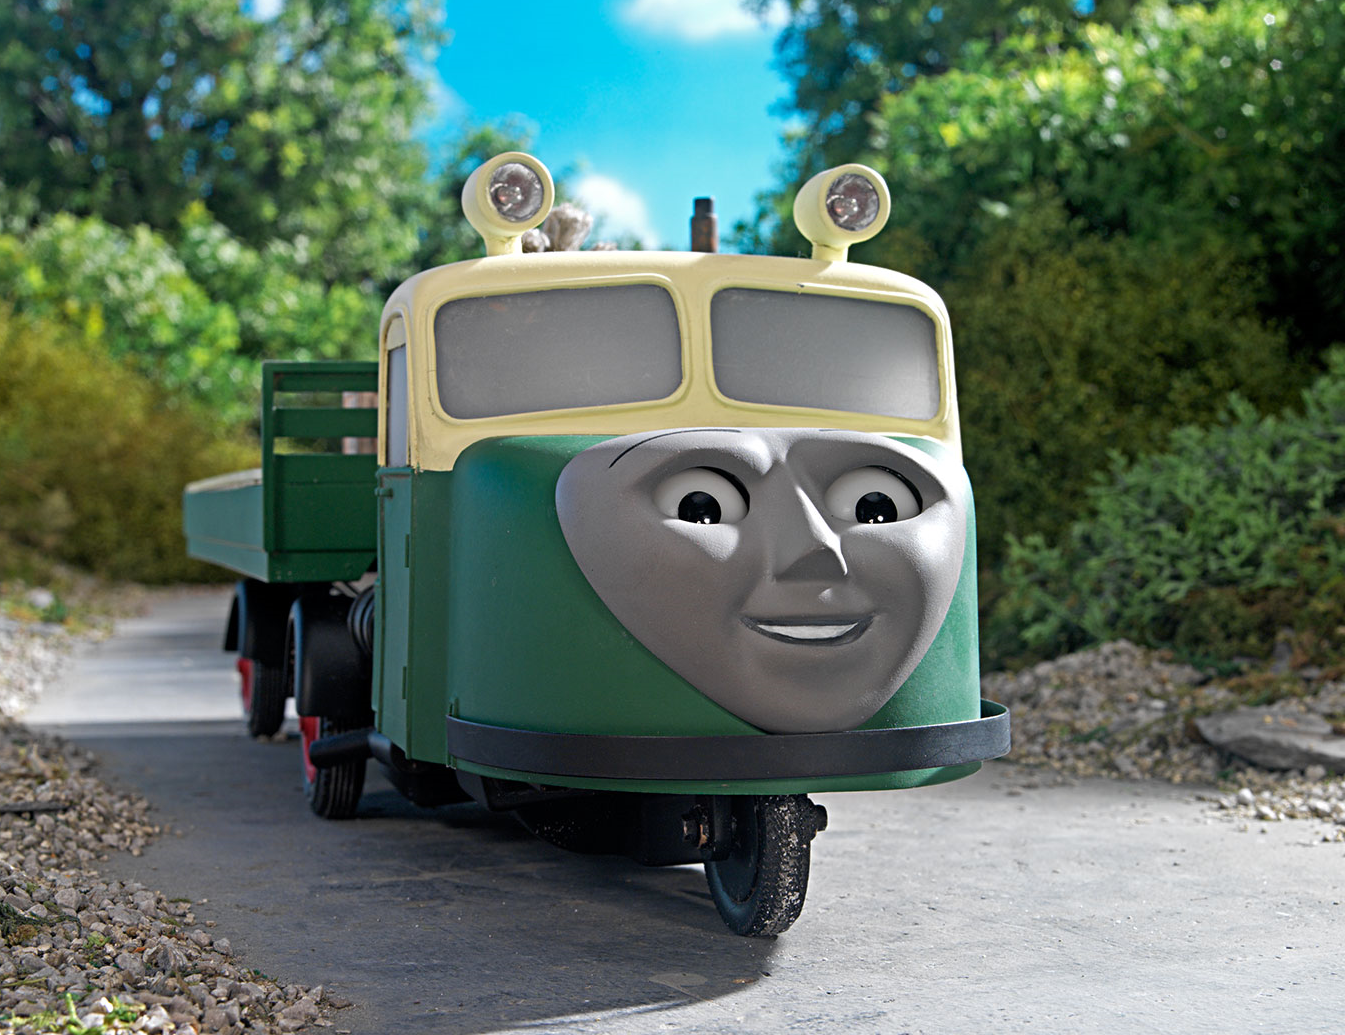 Image Washbehindyourbuffers72 Png Thomas The Tank